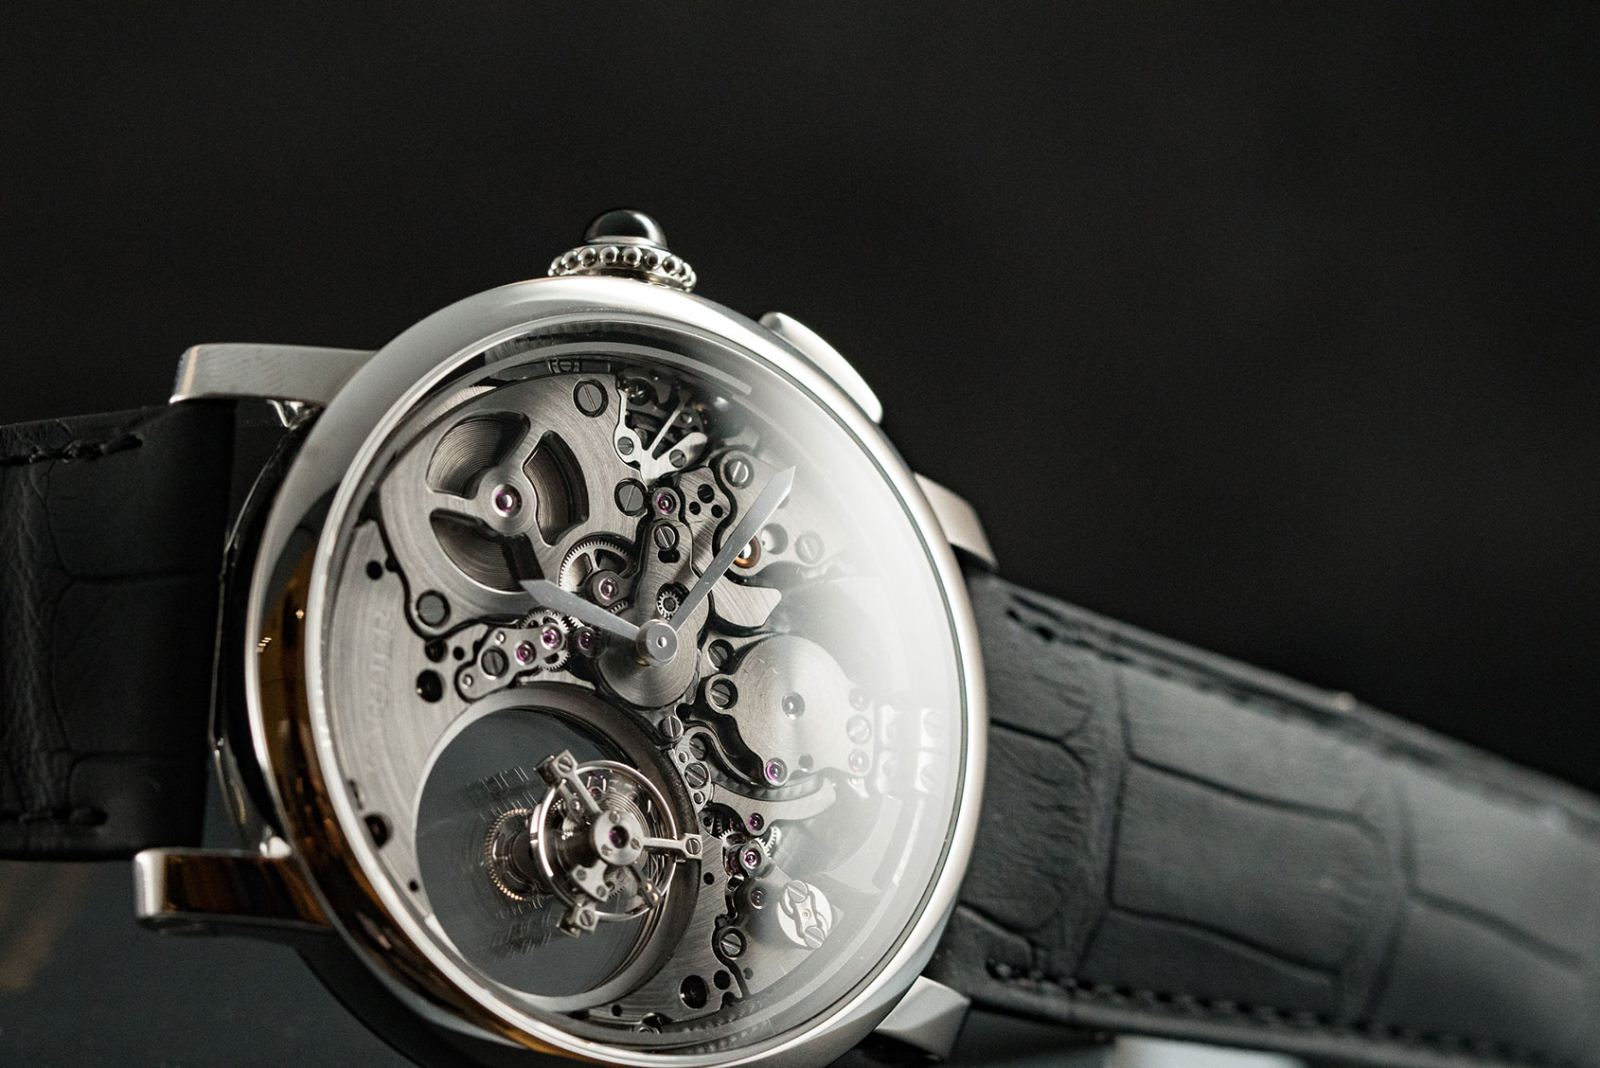 Đồng hồ Cartier Double Tourbillon Mysterious